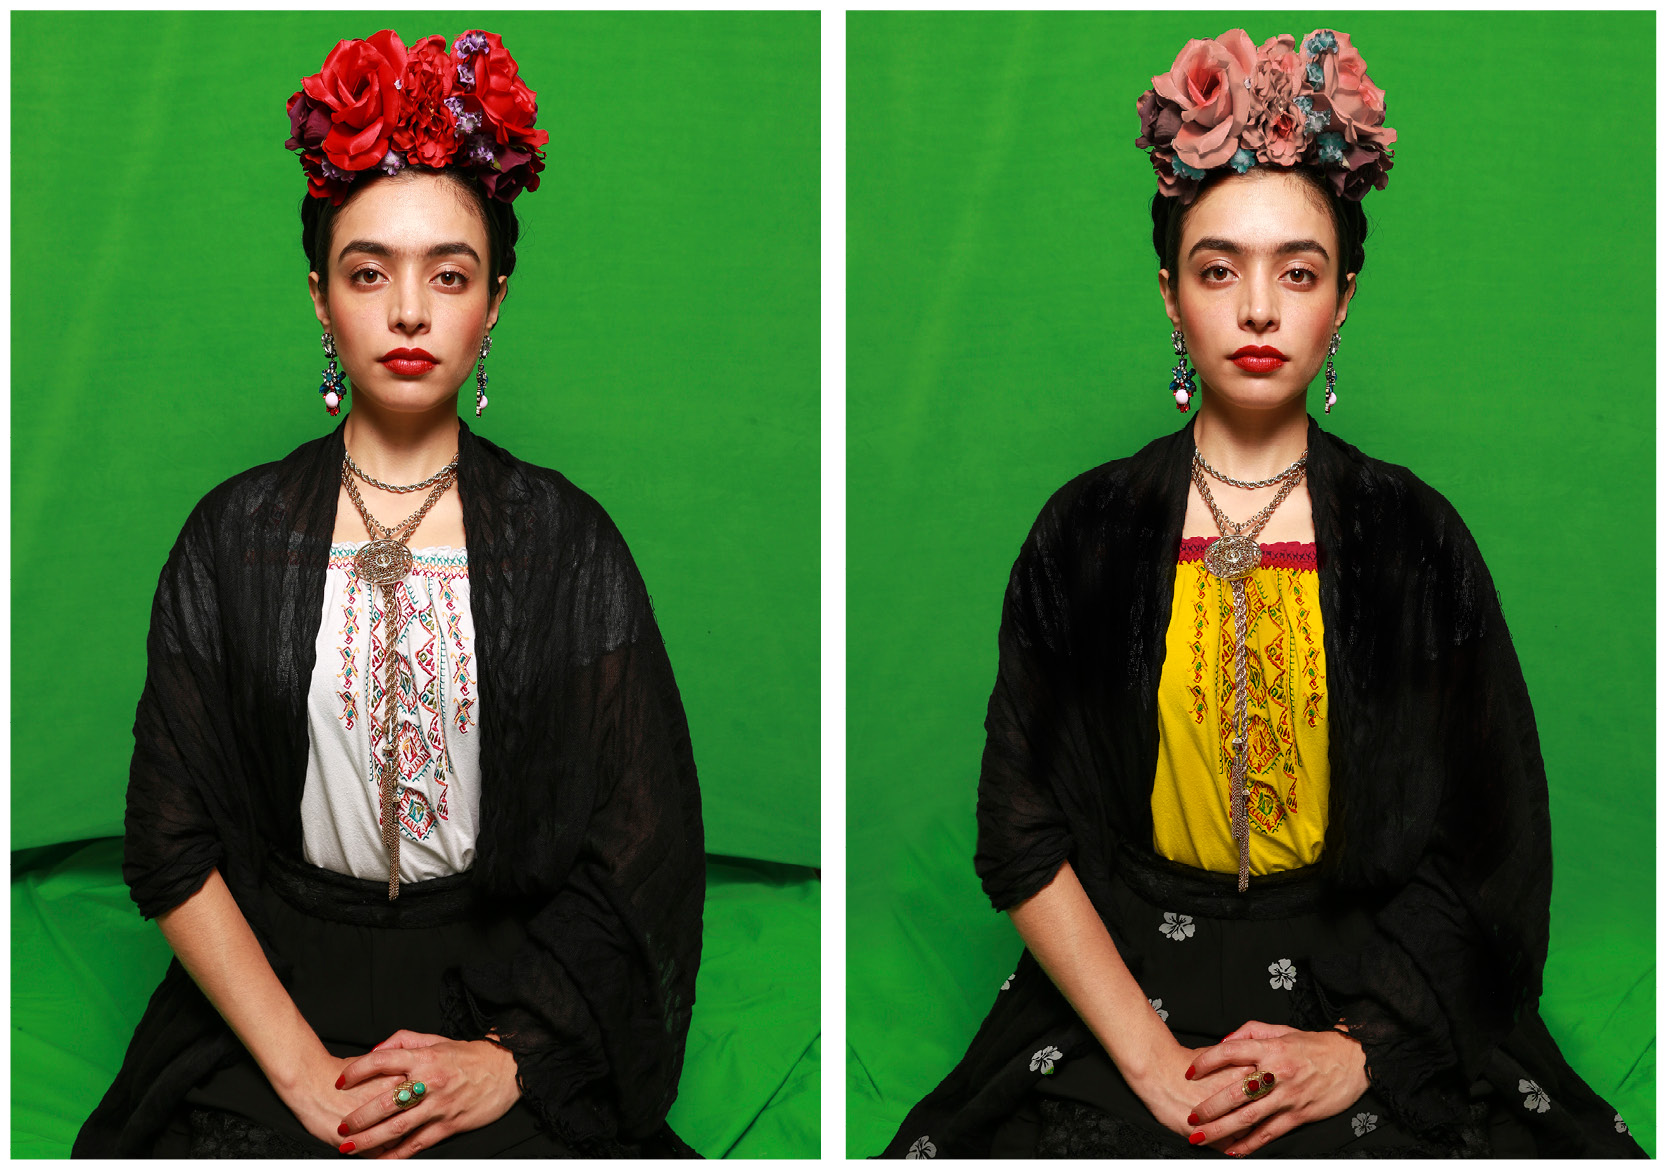 Before and after photos of Photoshop edits to Frida Kahlo replica photos